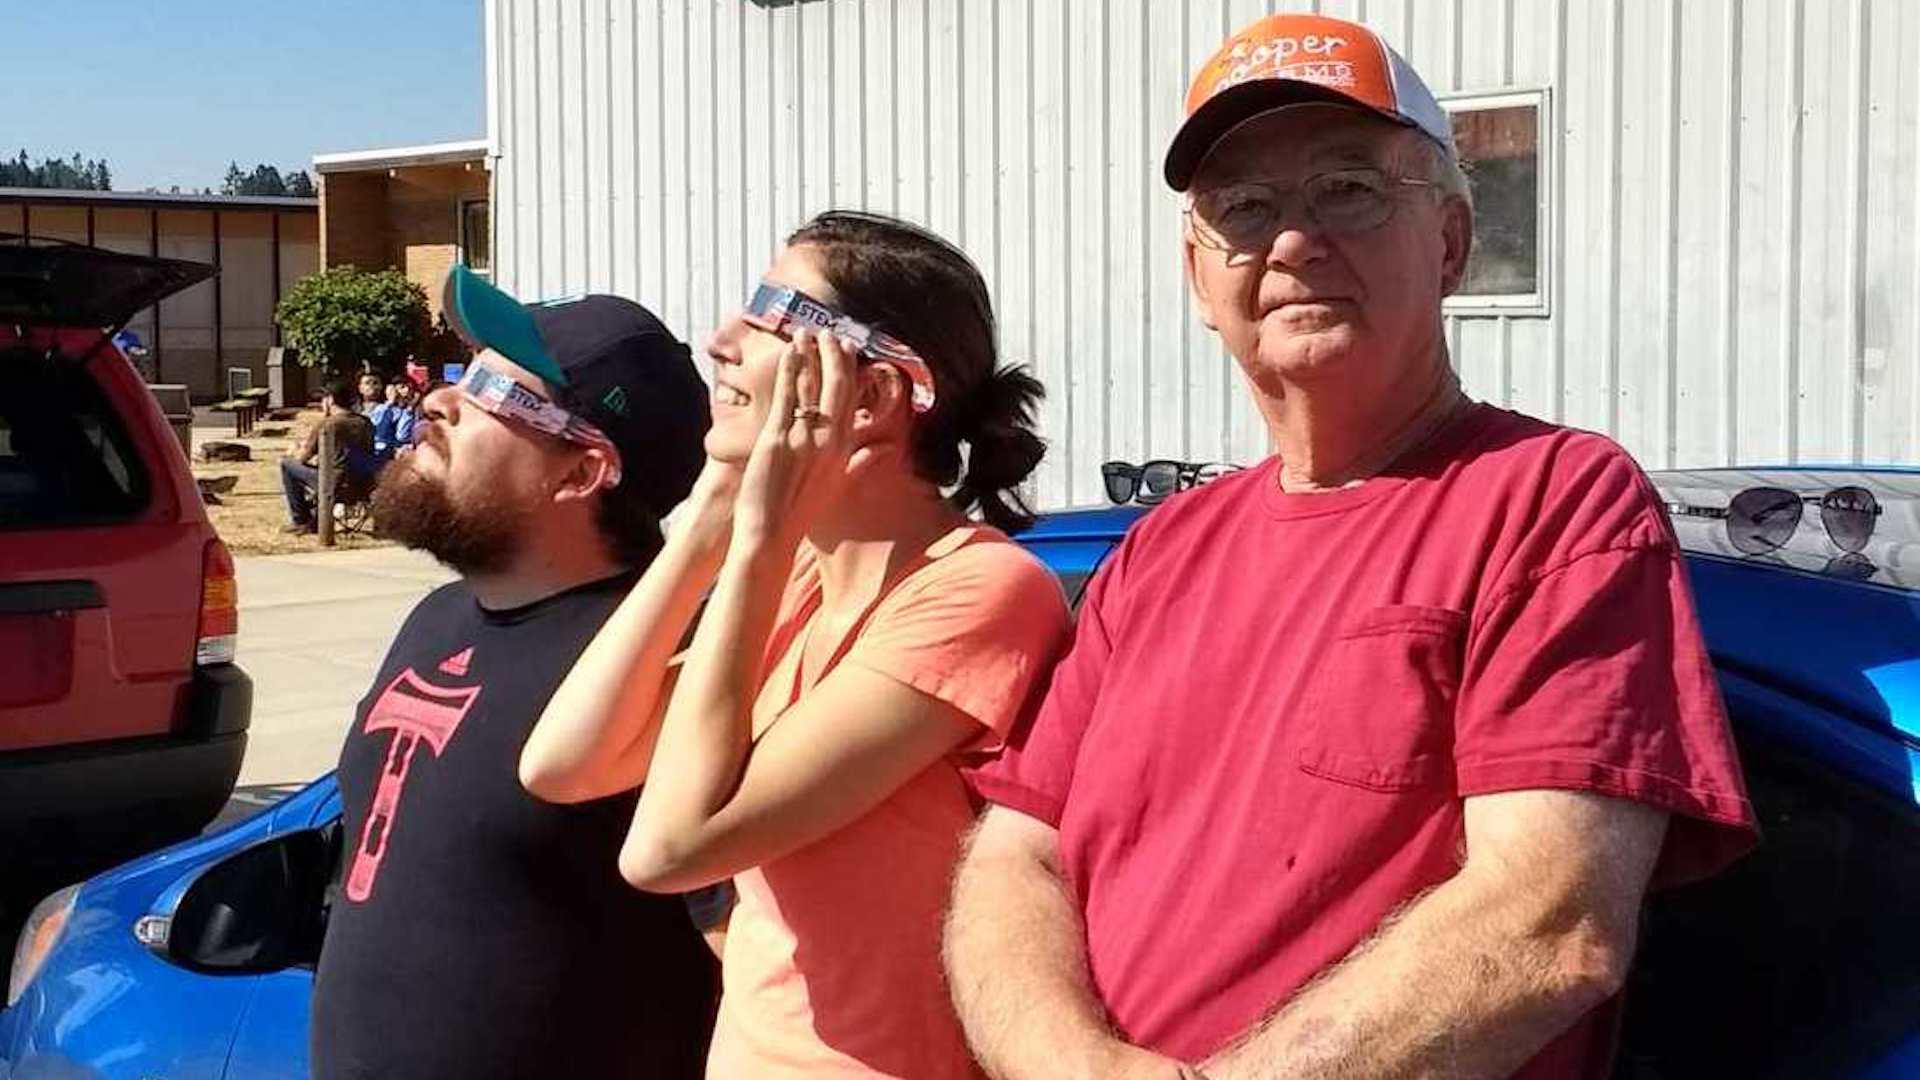 '20 seconds of burning': Friends partly blinded after watching solar eclipse warn of dangers